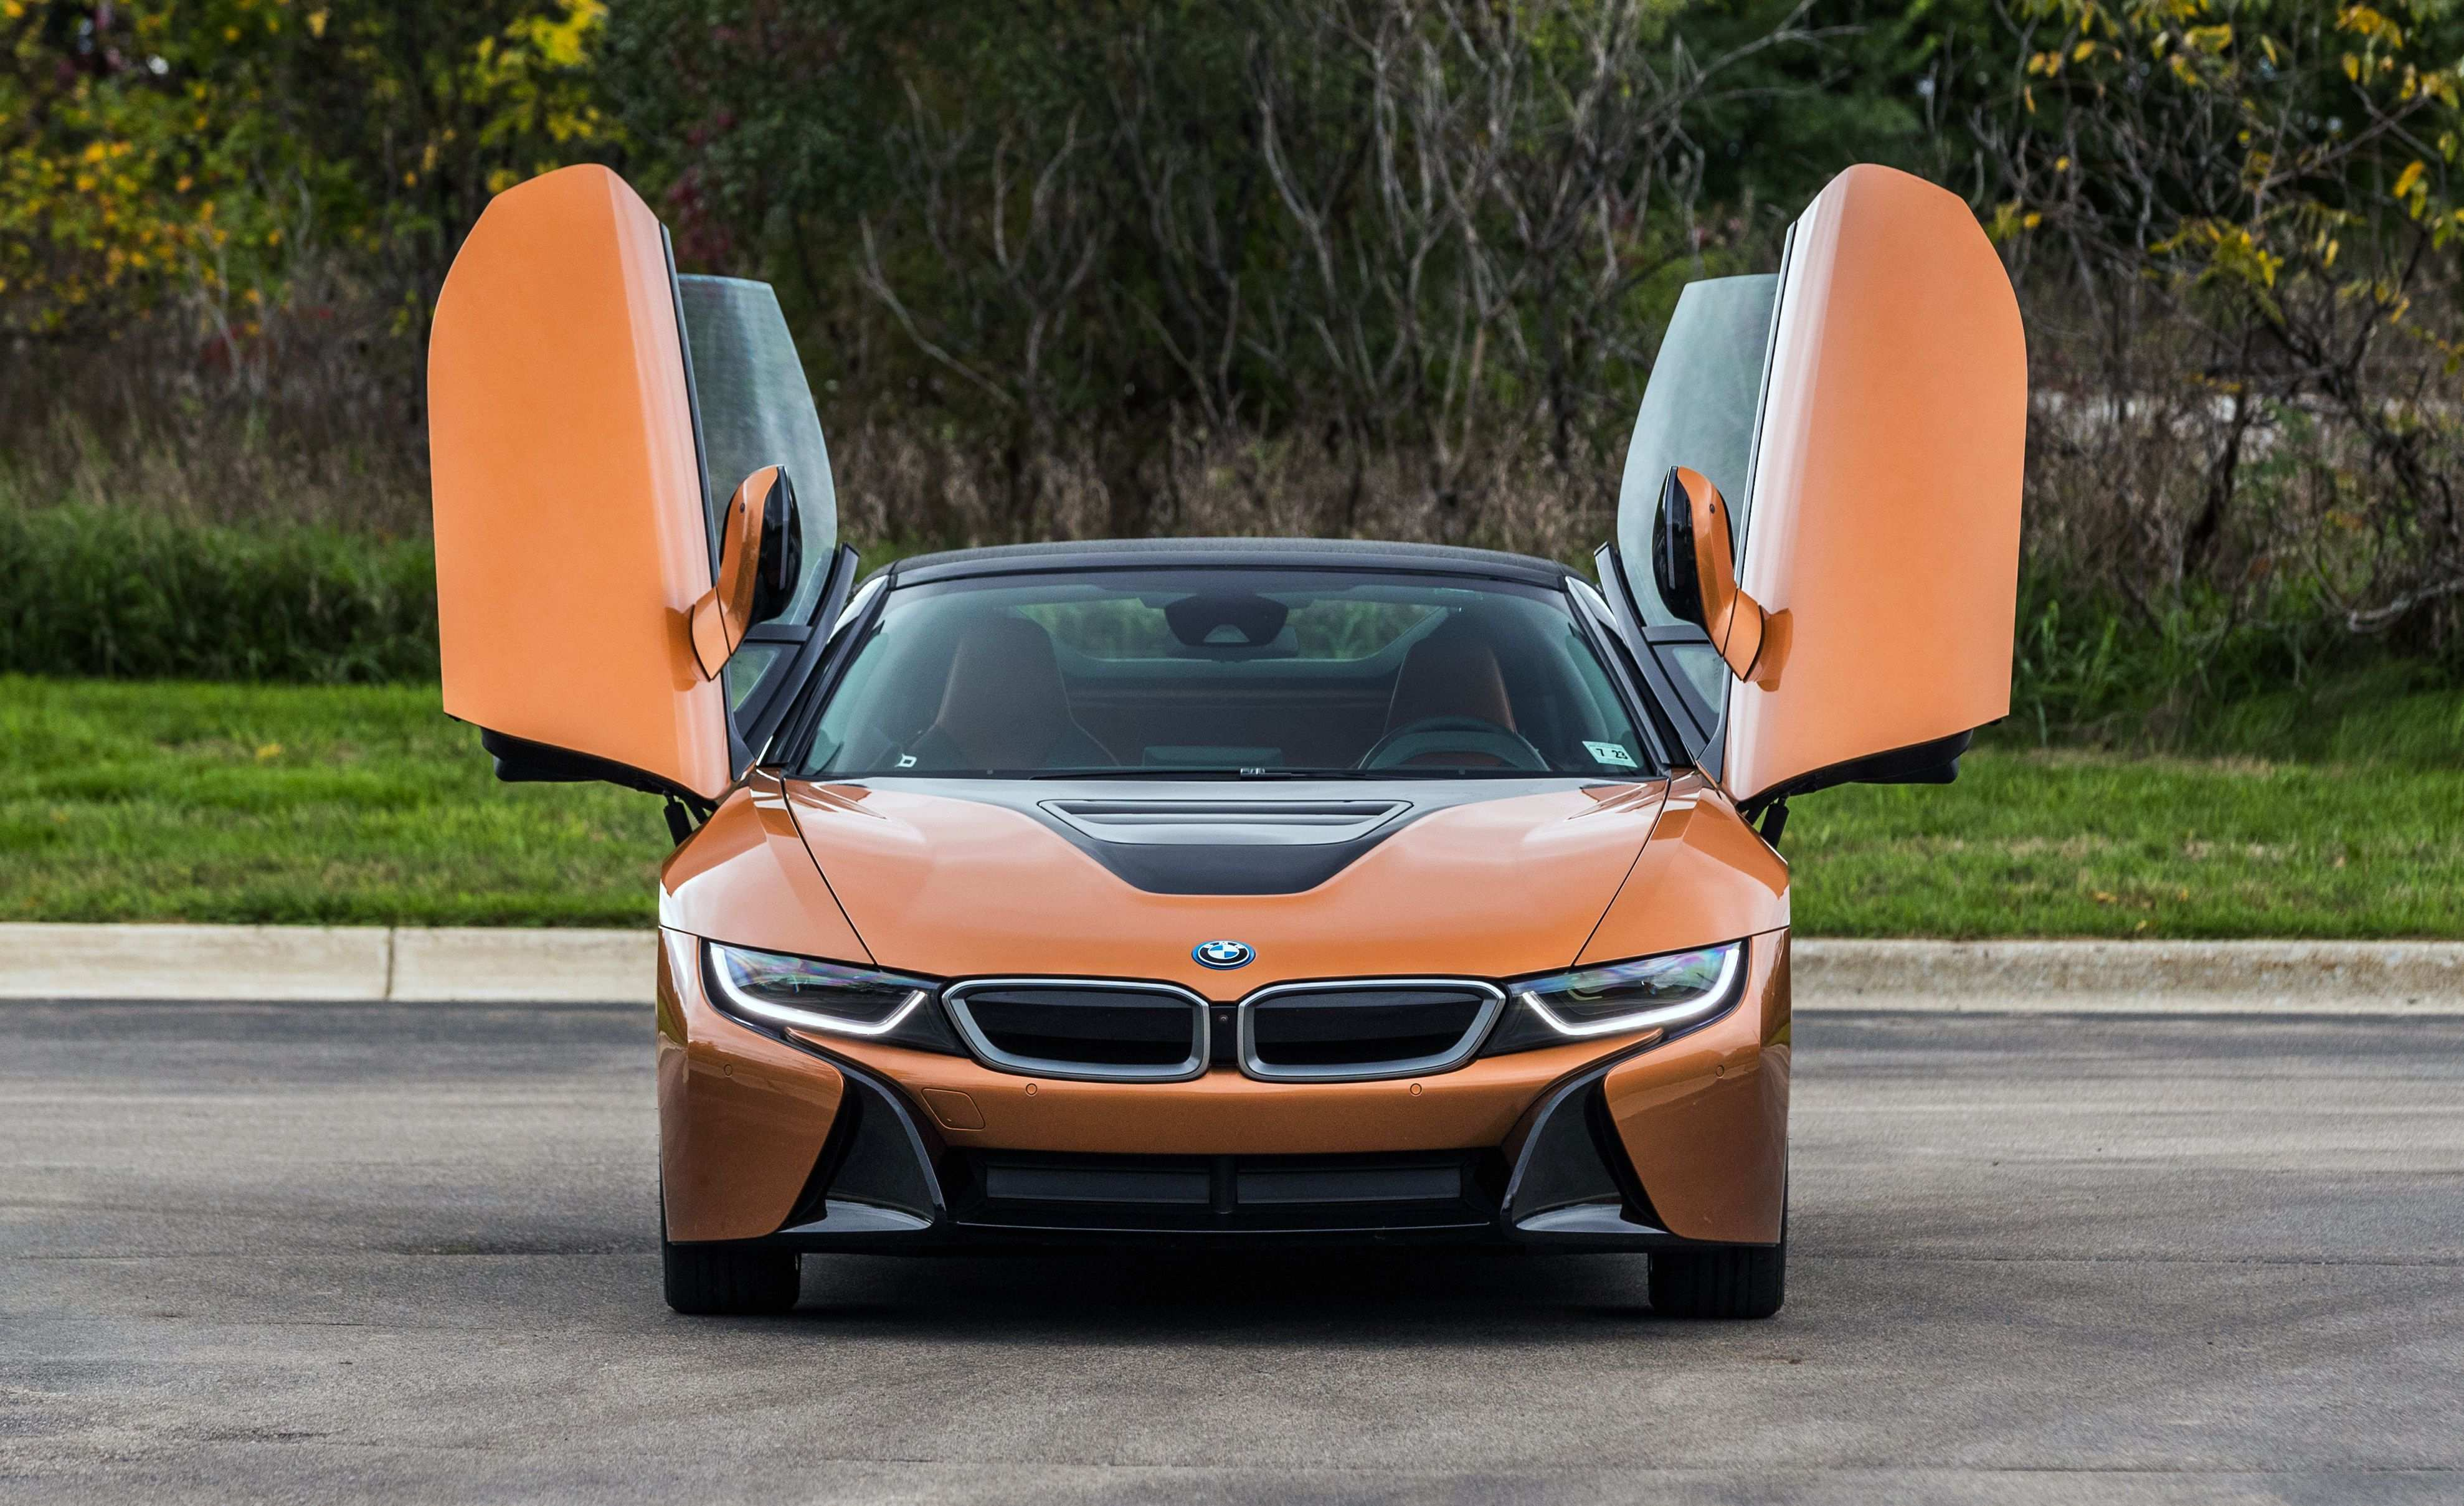 51 Gallery of New Bmw 2019 Electric Overview Concept with New Bmw 2019 Electric Overview